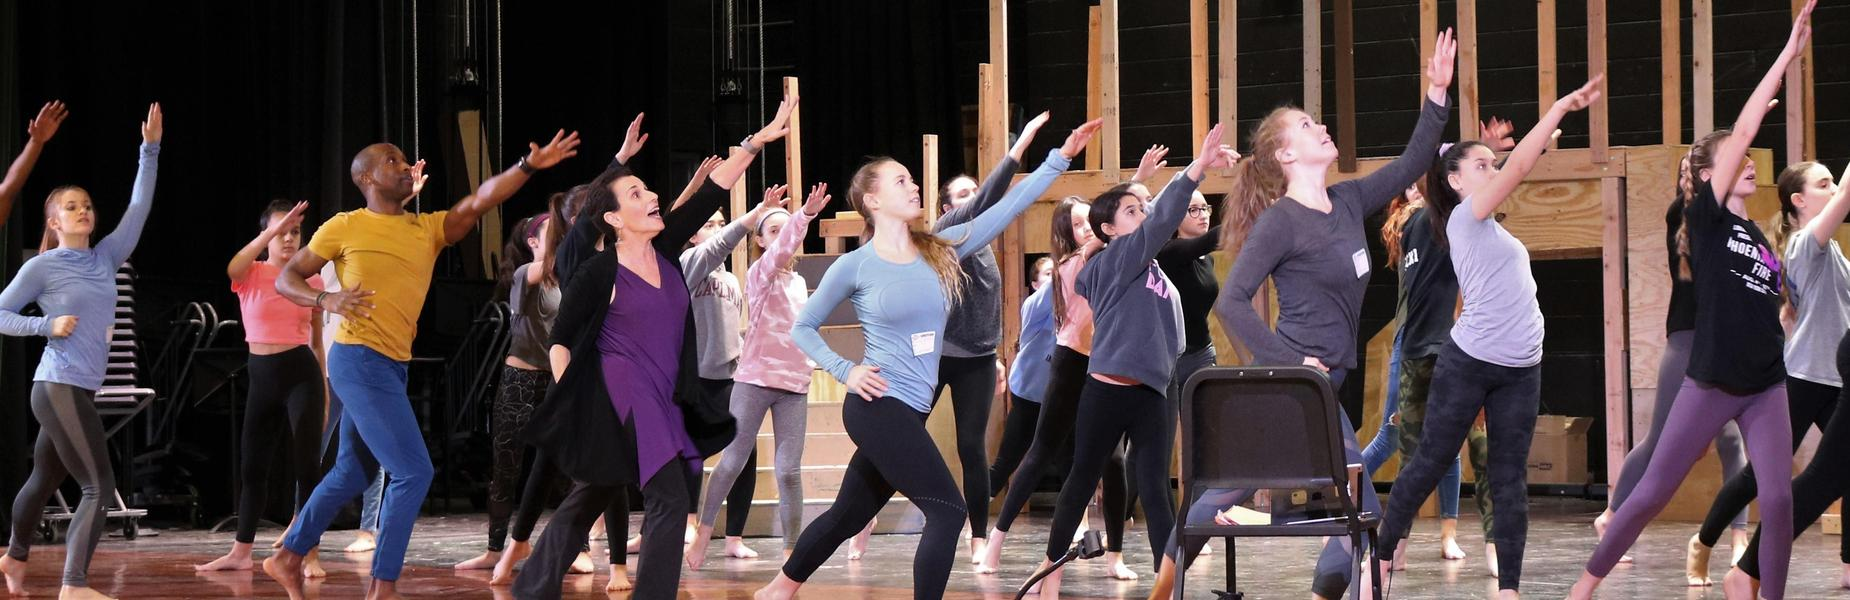 :  Edison students take part in a master class conducted by the Carolyn Dorfman Dance company on Feb. 4, exploring ways to express themselves through movement.